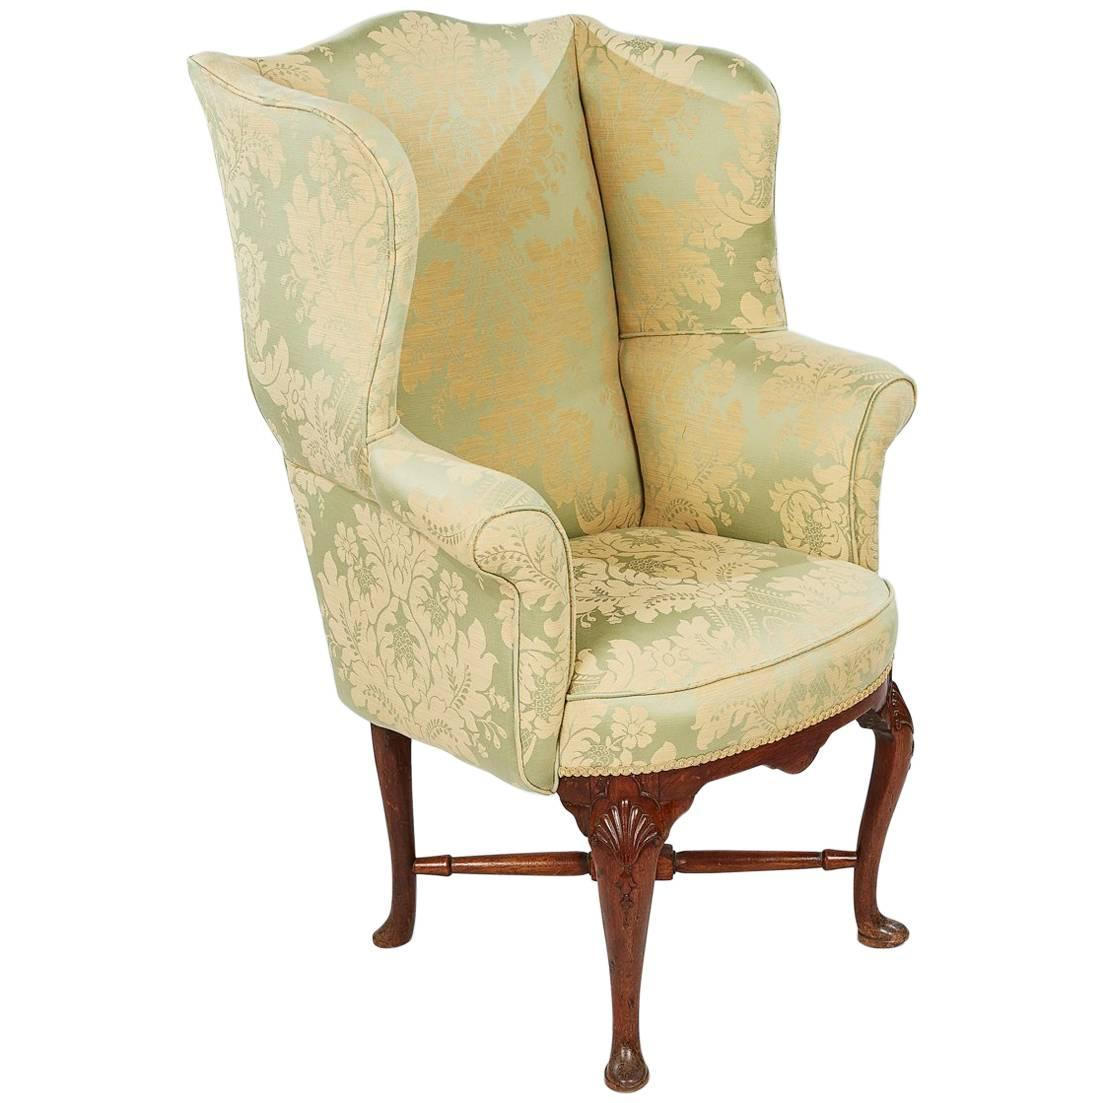 18th century mahogany fully upholstered wing chair